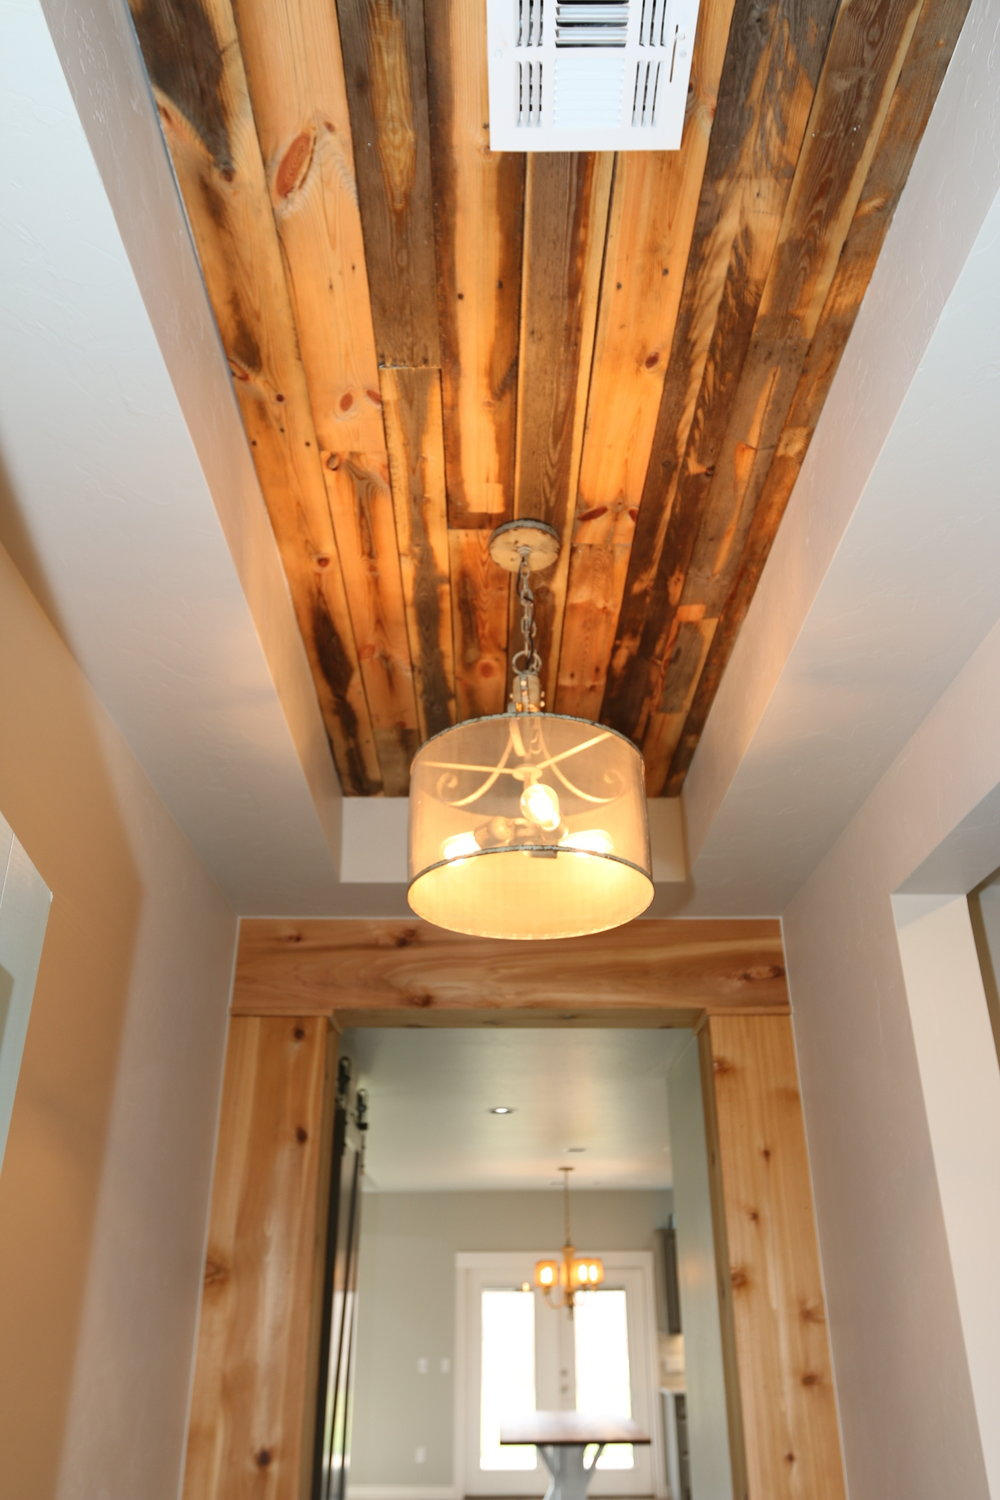 reclaimed wood walls and ceiling with chandelier.jpeg